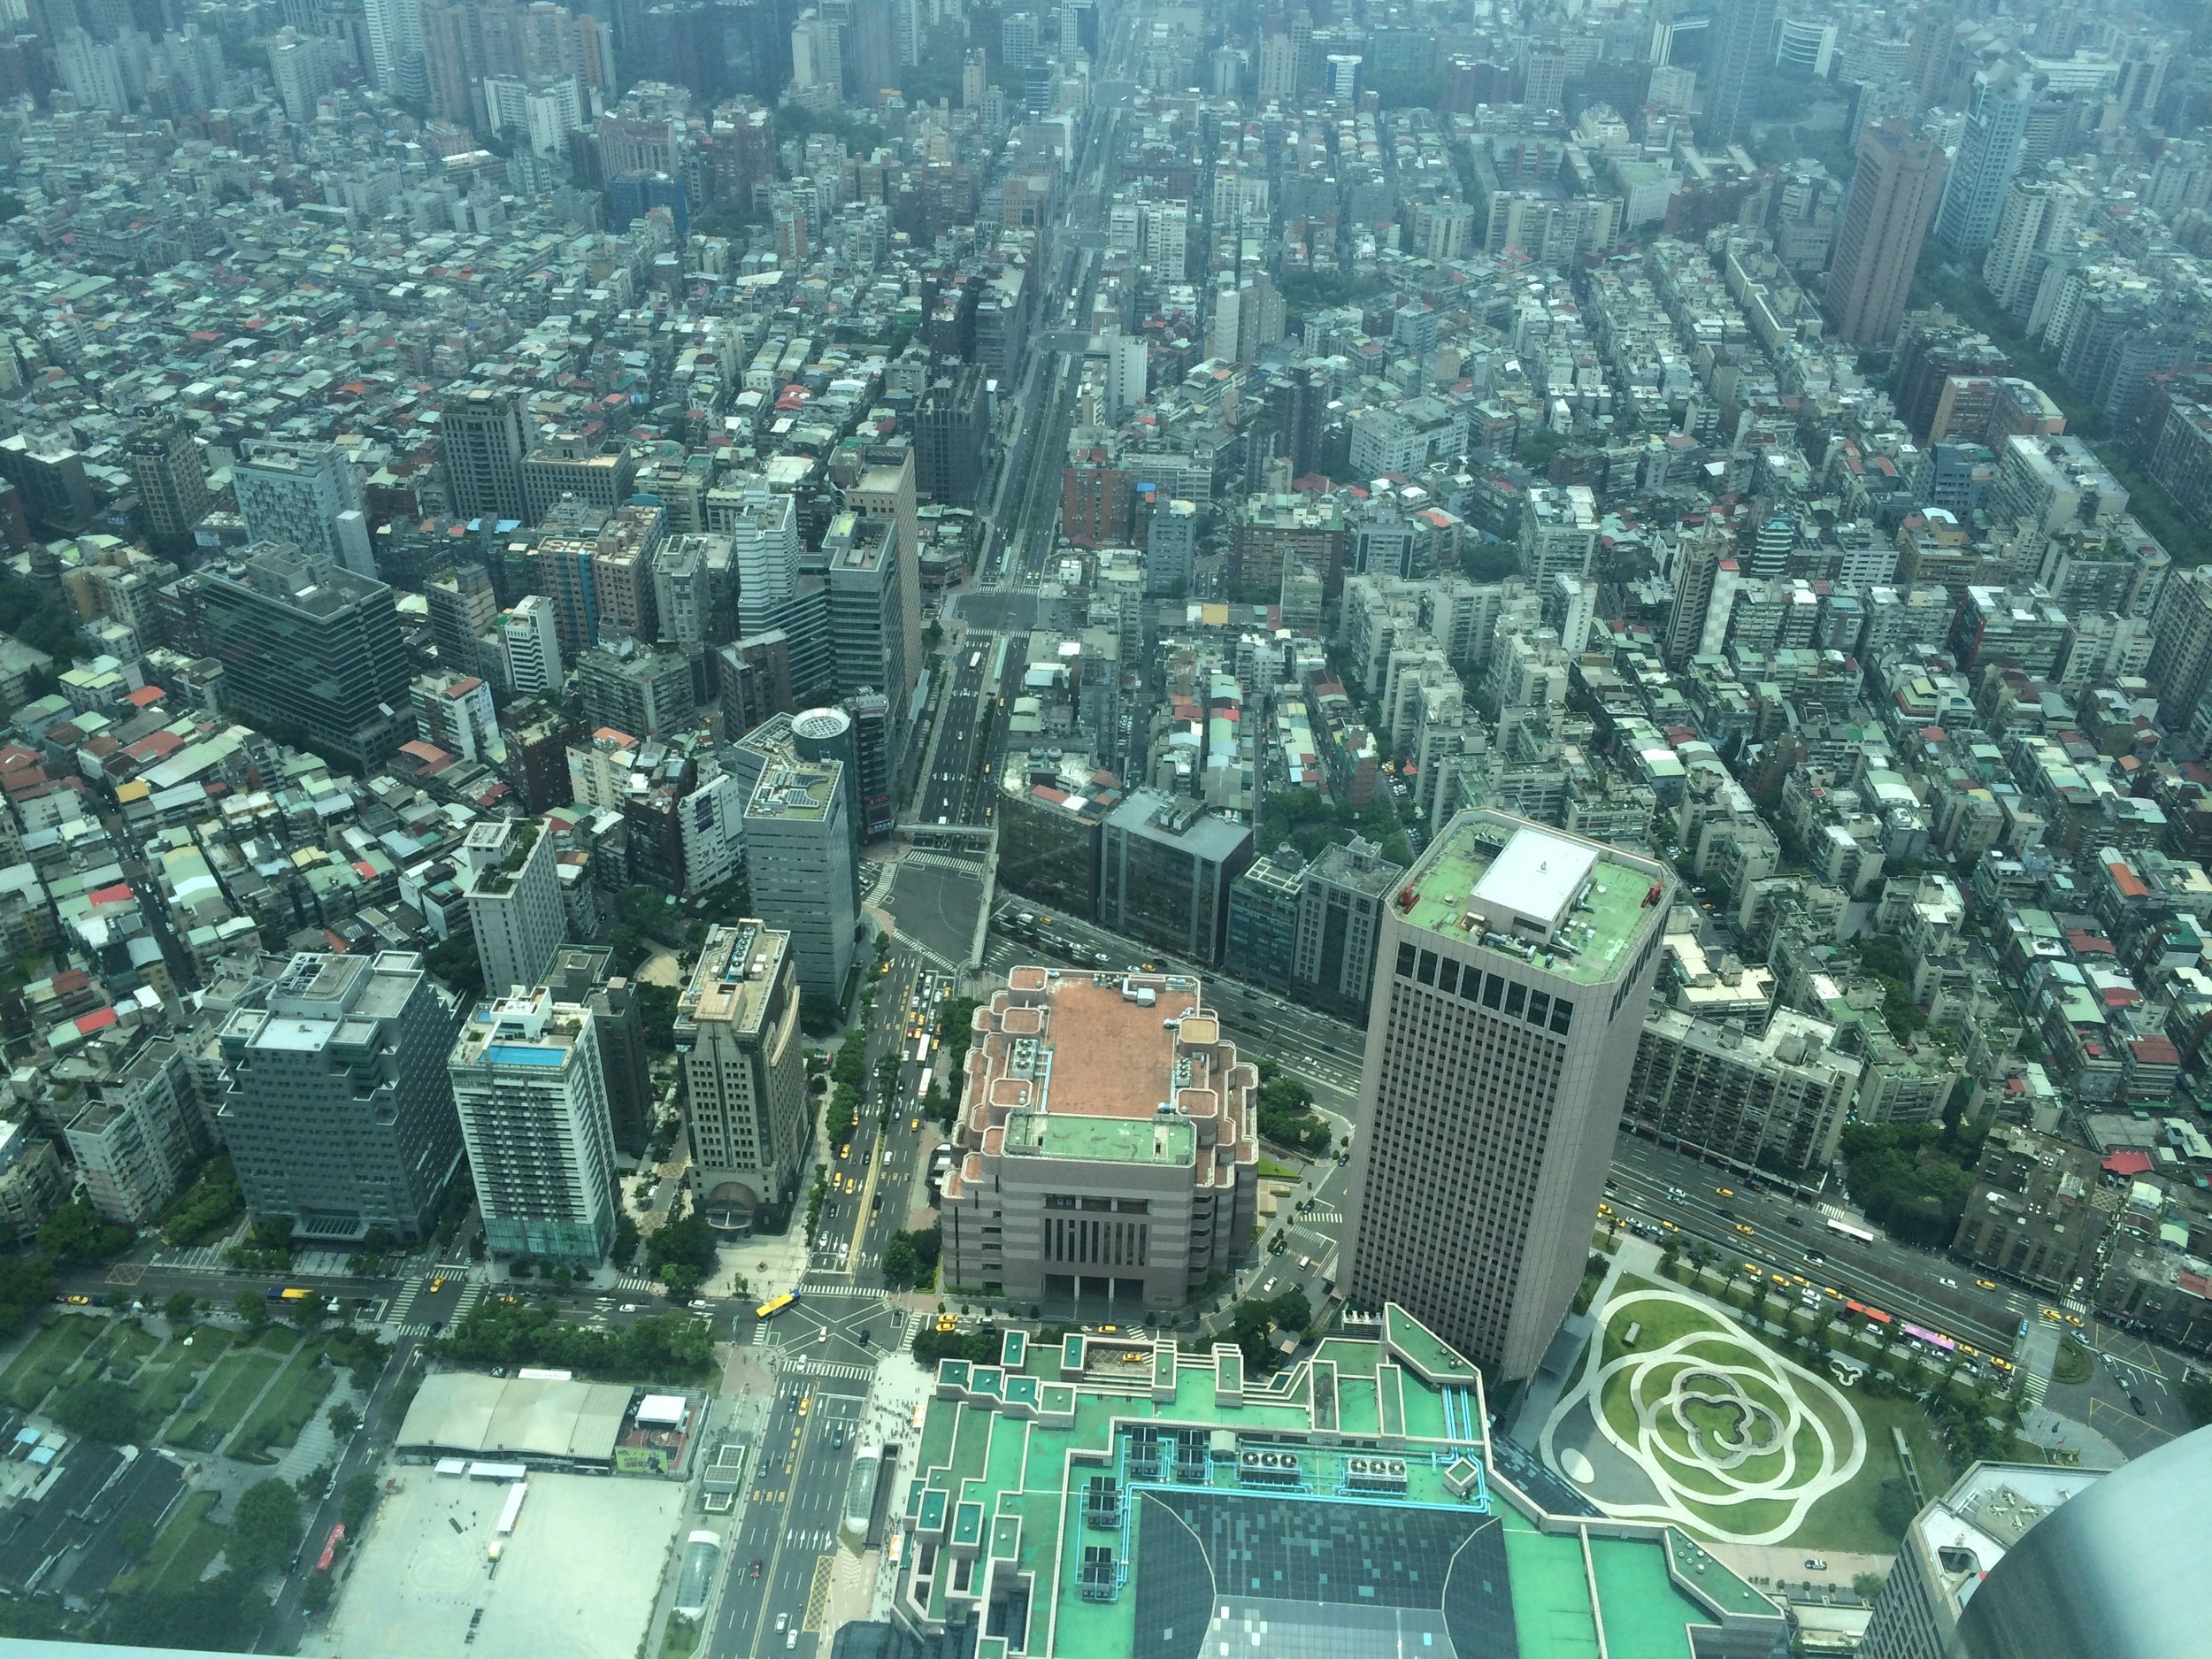 Looking down from the viewing deck of Taipei 101, a corner of Taipei, Taiwan